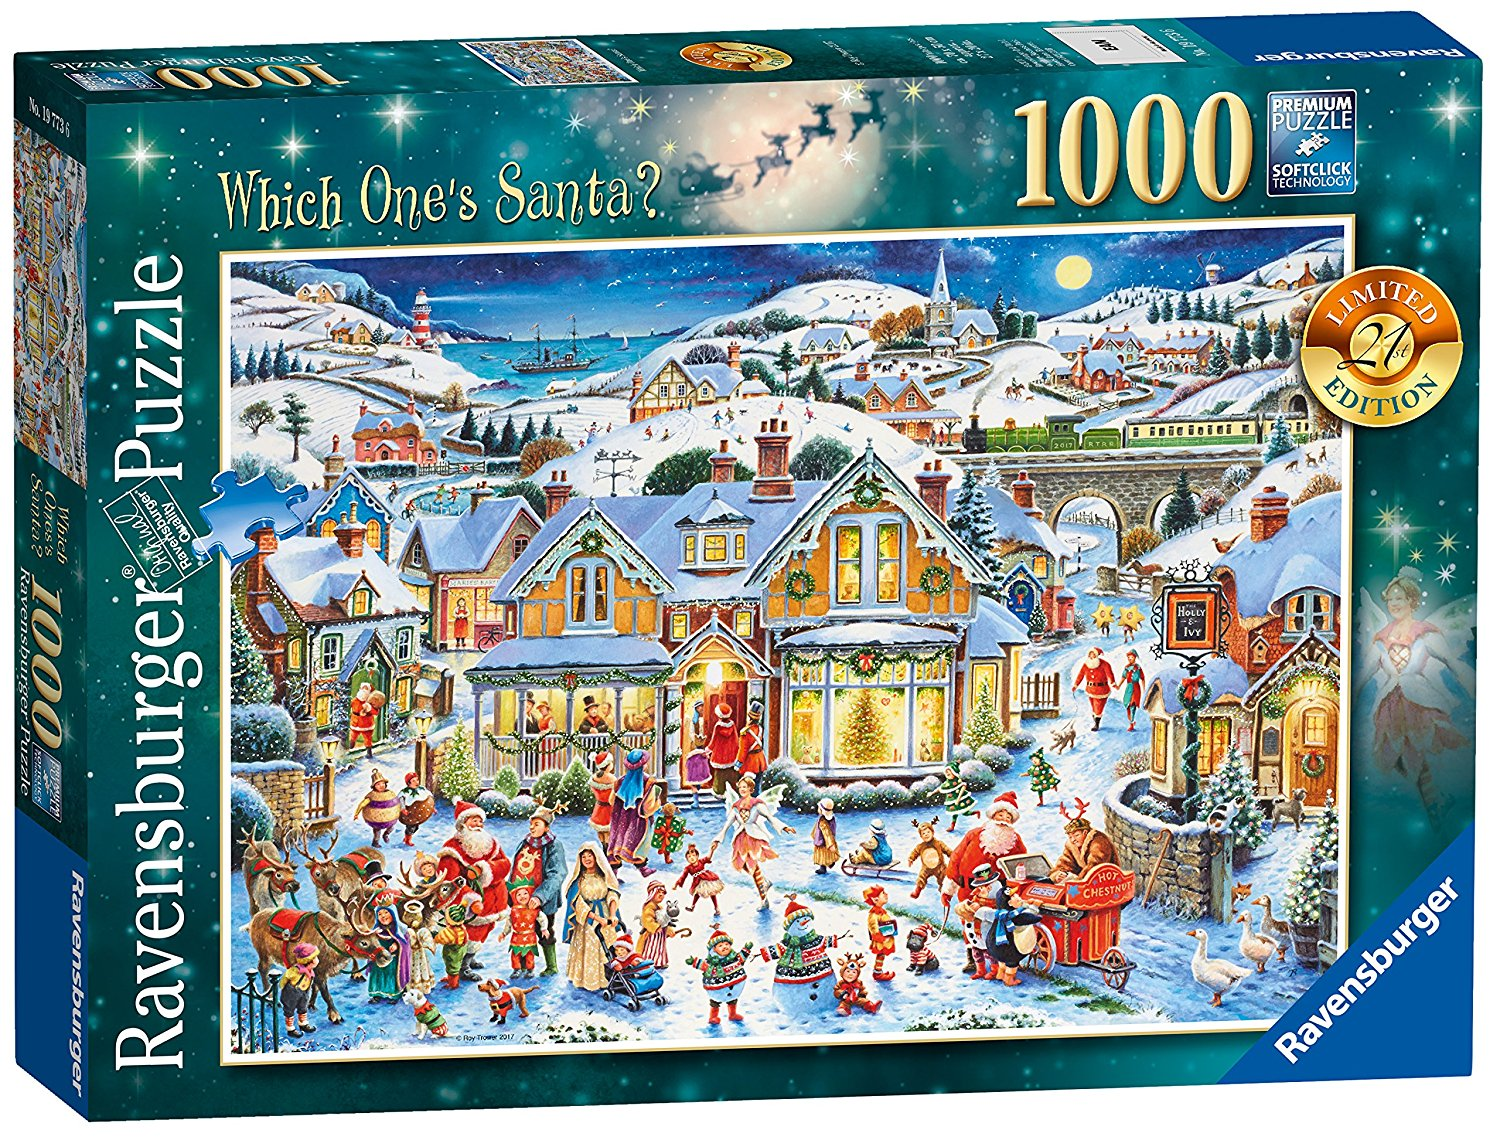 Which One's Santa, Ravensburger Christmas Puzzle 2017, 1000pc